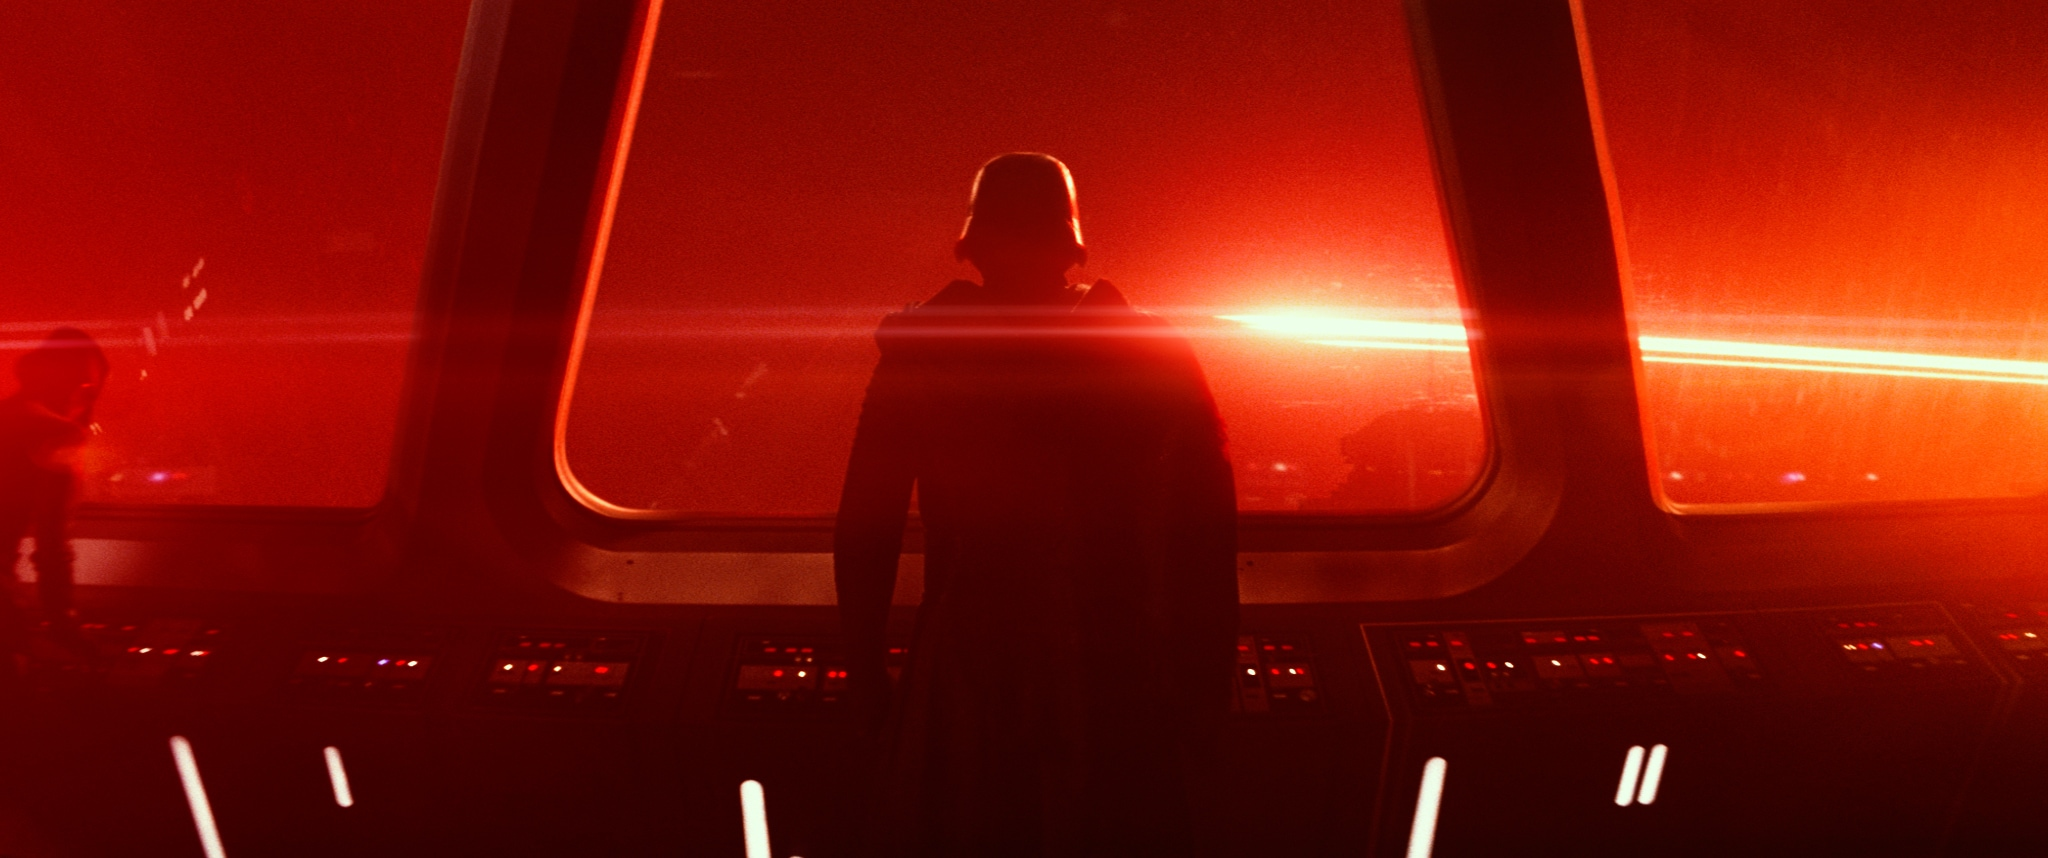 Adam Driver as Kylo Ren stands alone on a starship in the movie Star Wars: The Force Awakens